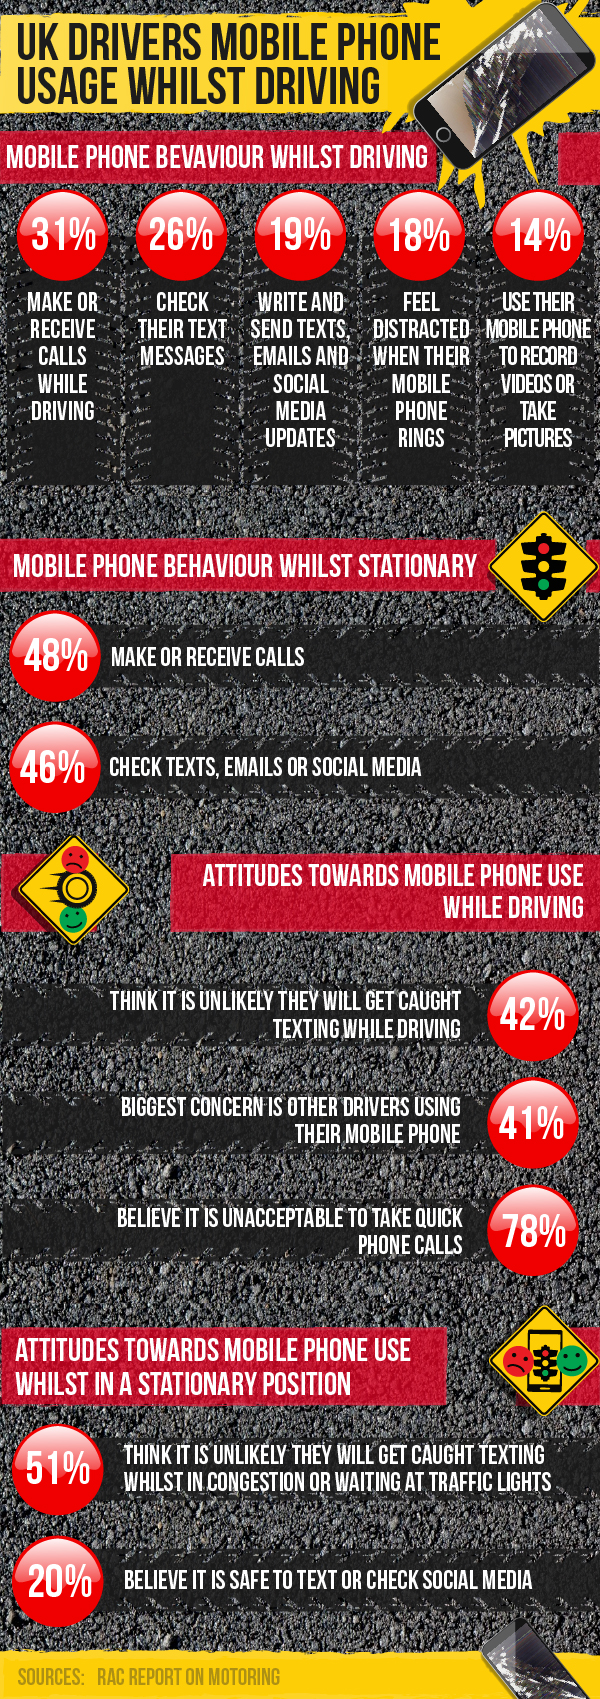 mobile-phone-usage-whilst-driving-uk-infographic